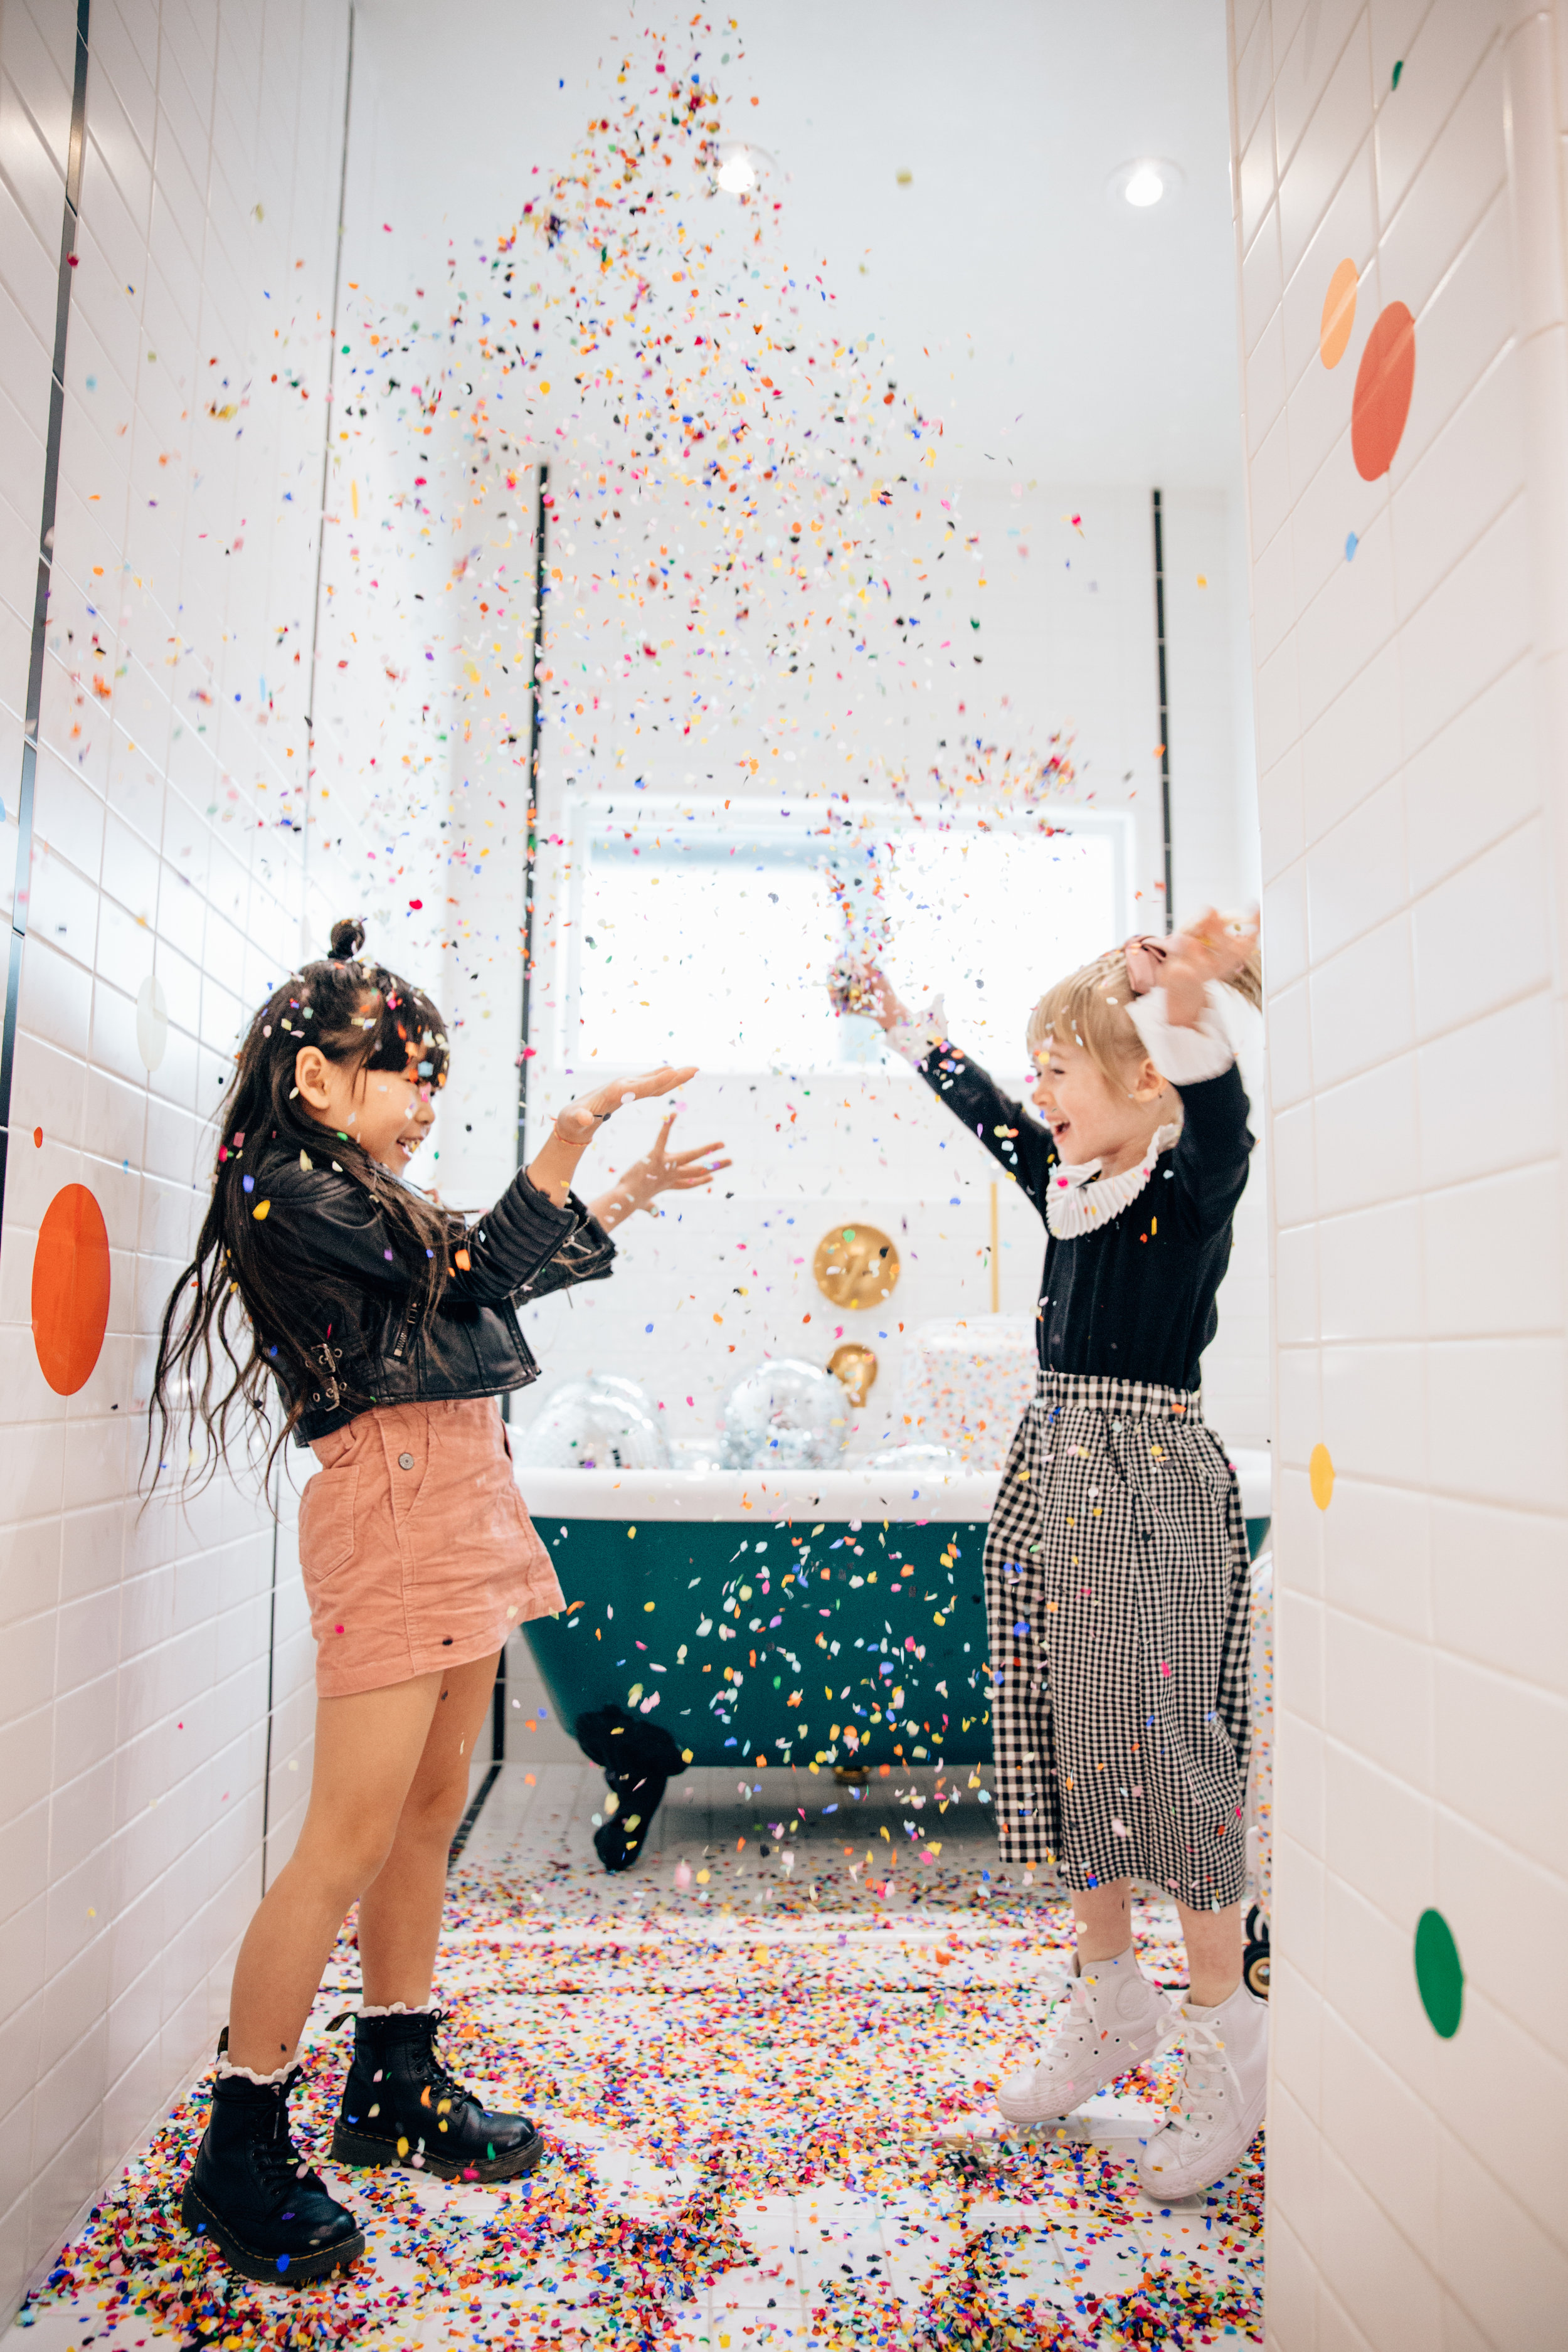 Making it rain in the confetti shower with Zooey from  @zooeyinthecity !